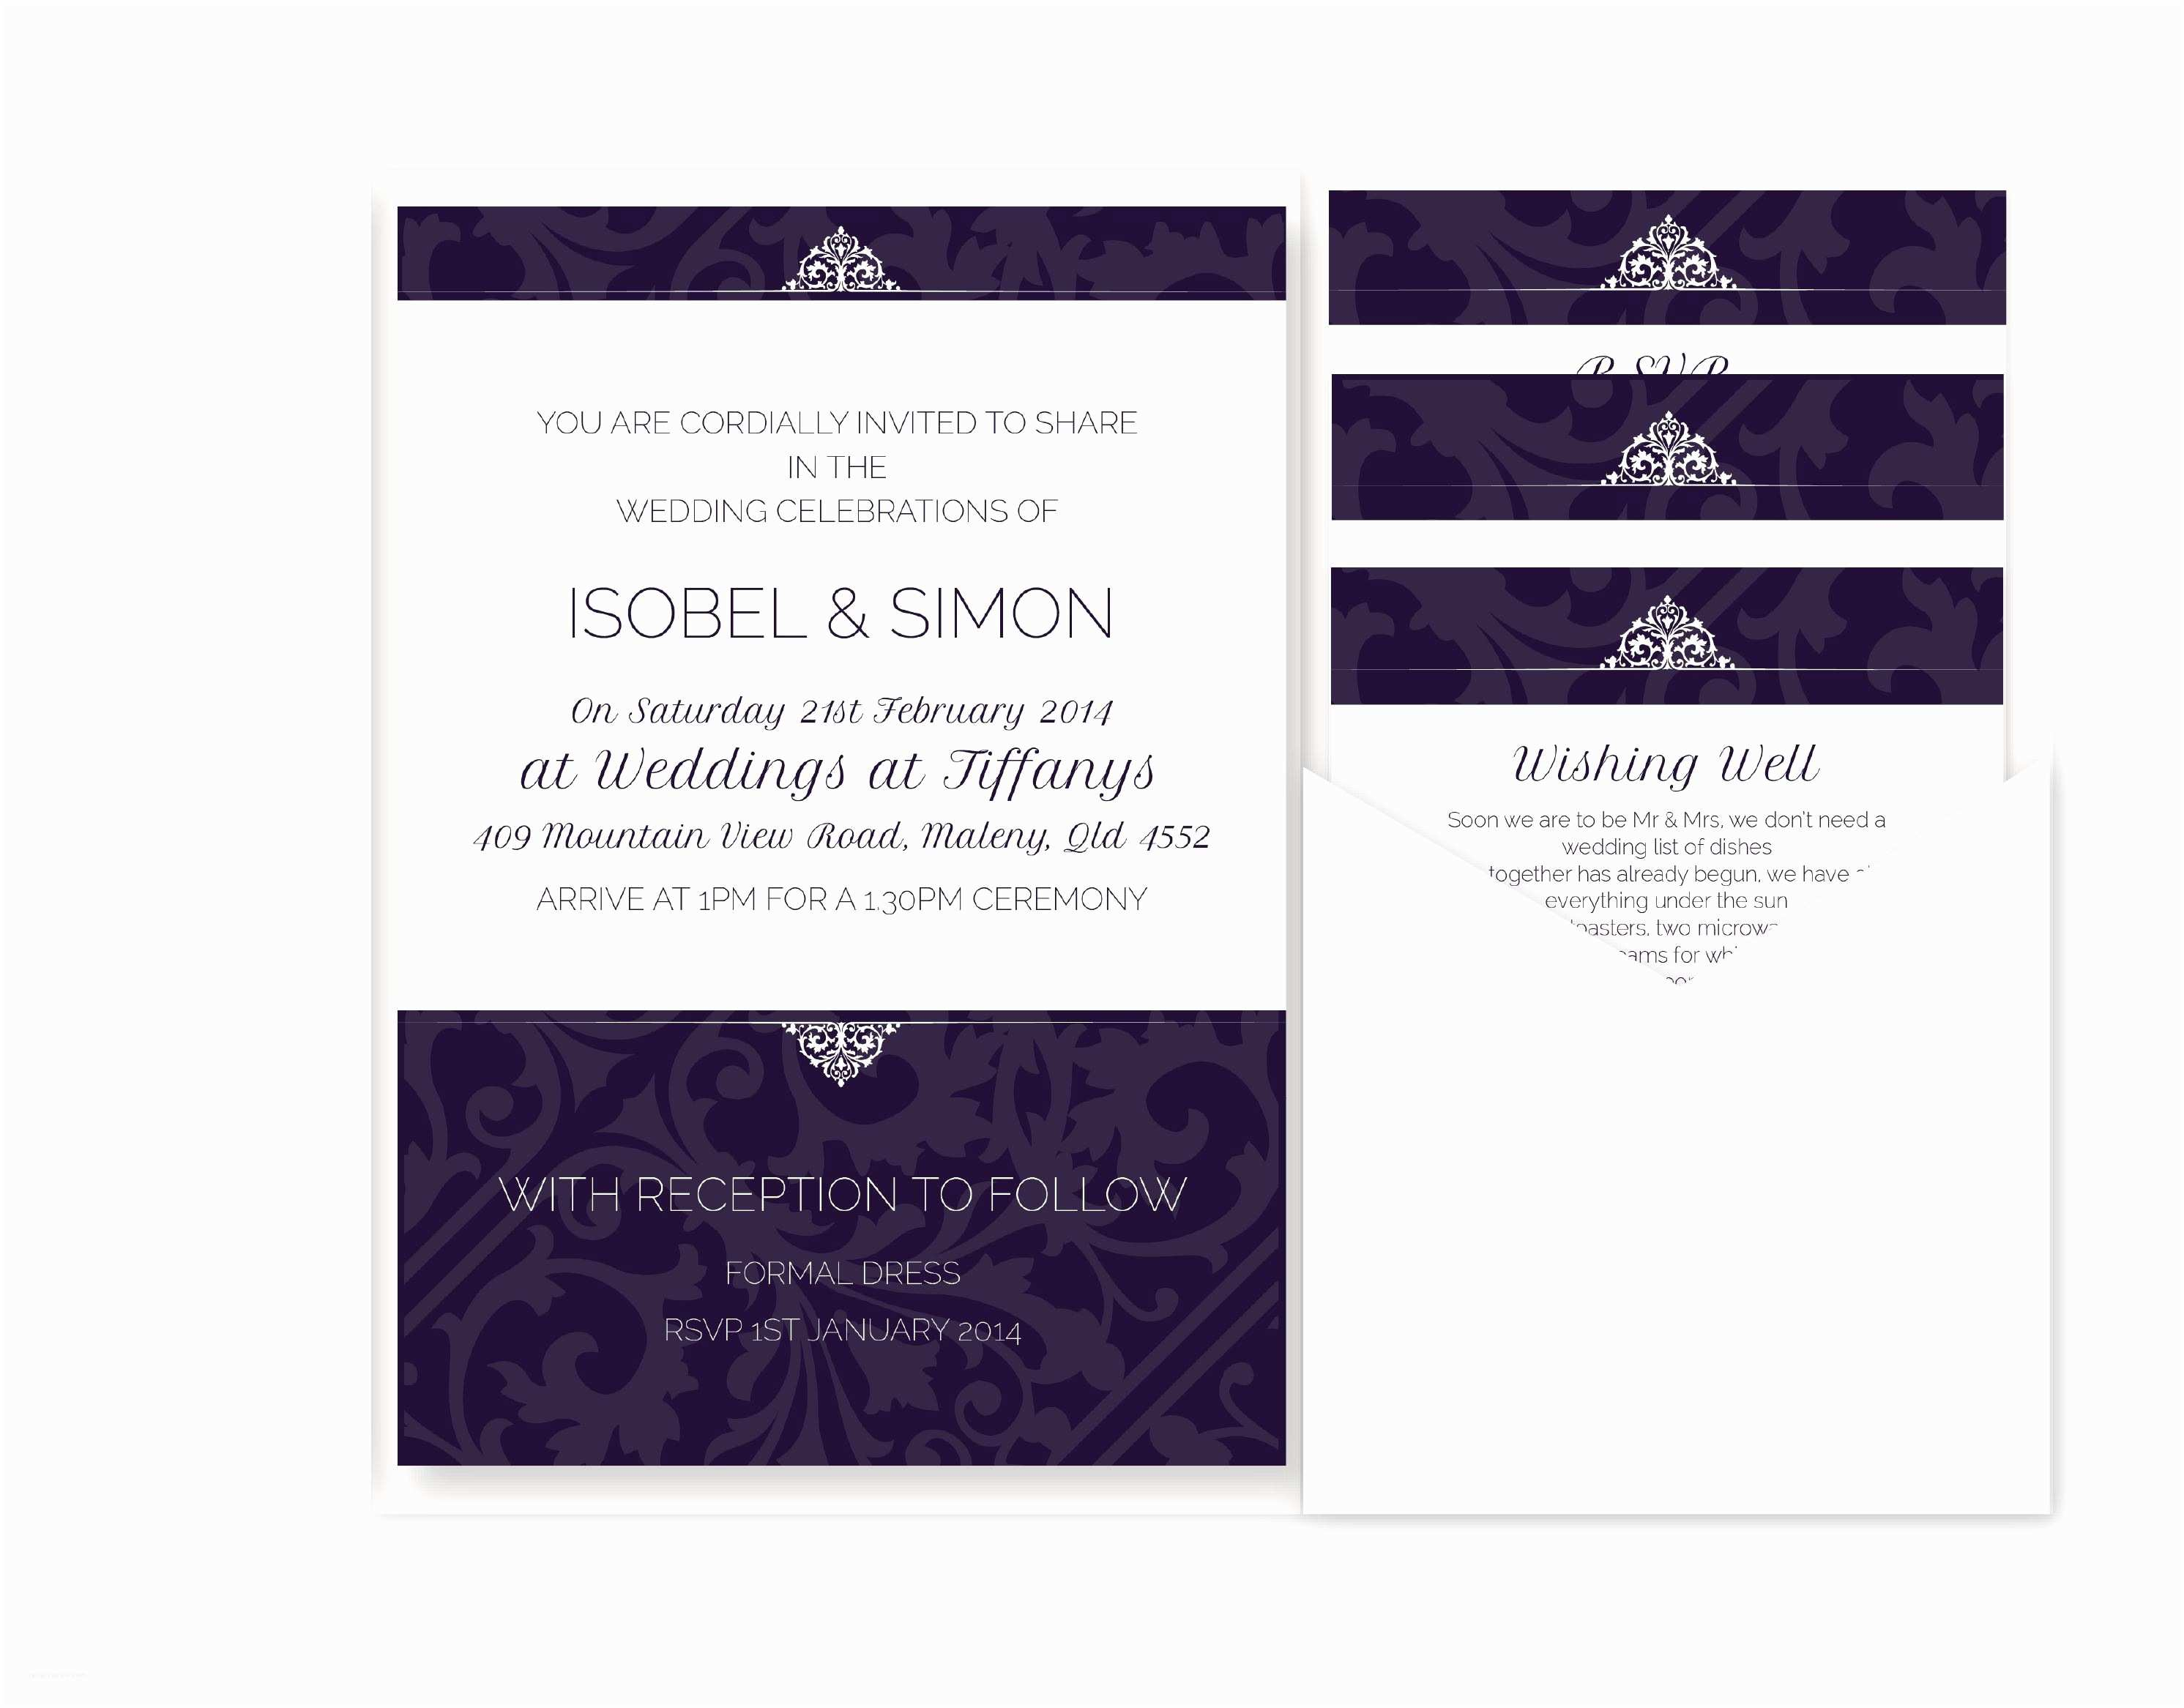 Wedding Invitations with Rsvp Cards Included Wedding Invitations with Rsvp Cards Included Wedding